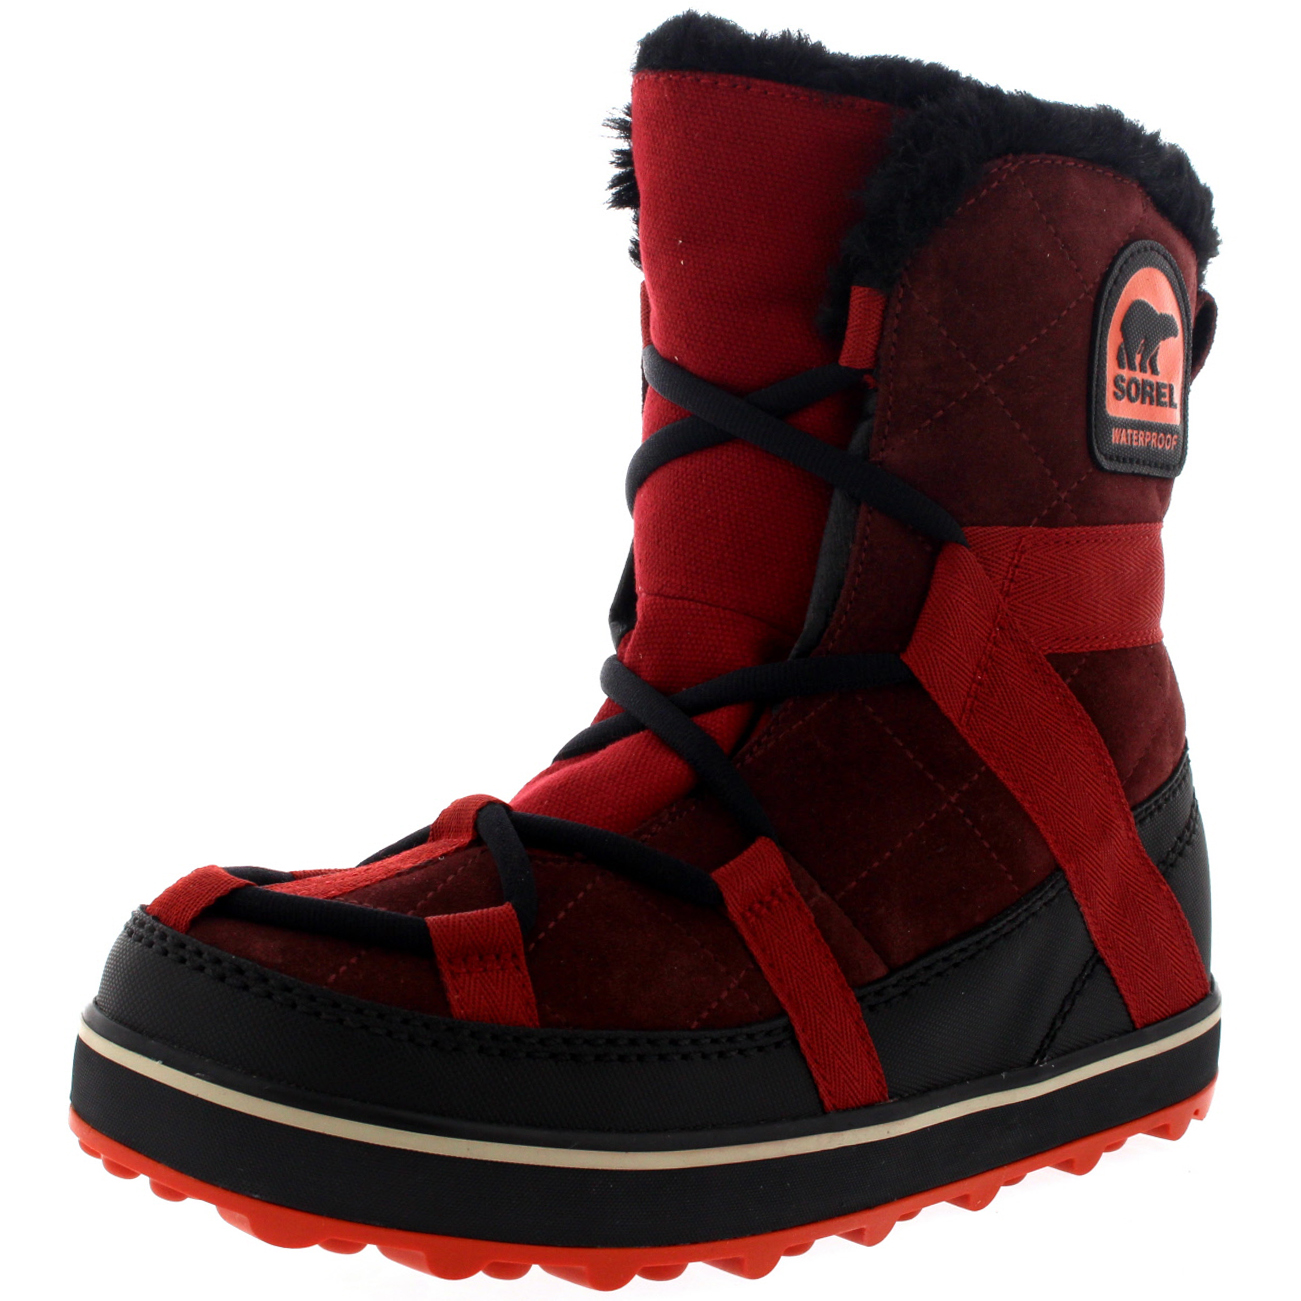 Zapatos especiales con descuento Ladies Sorel Glacy Explorer Shortie Rain Winer Snow Suede Warm Boots All Sizes